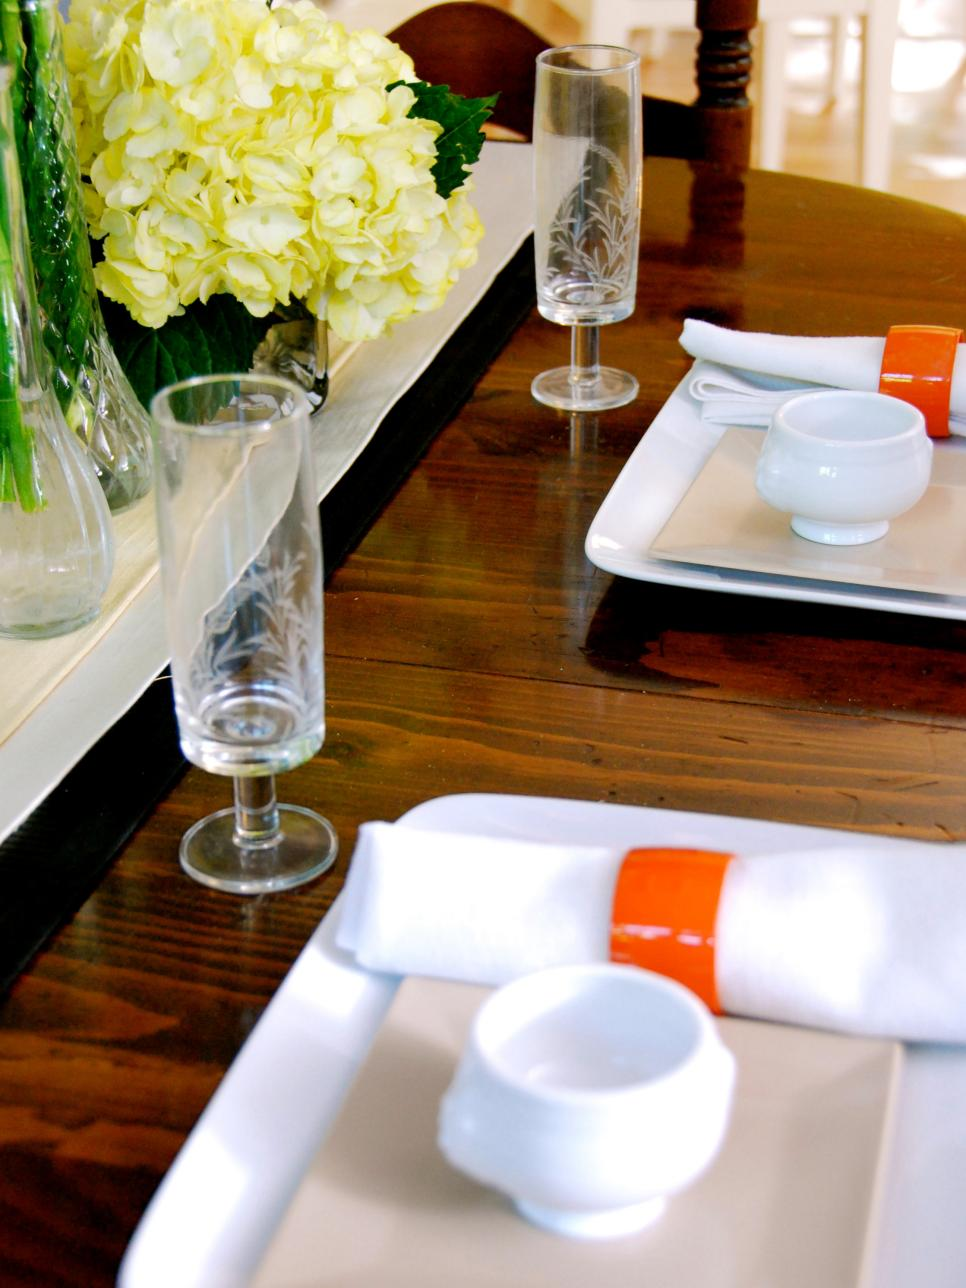 Restaurant table setting ideas - Open Gallery5 Photos